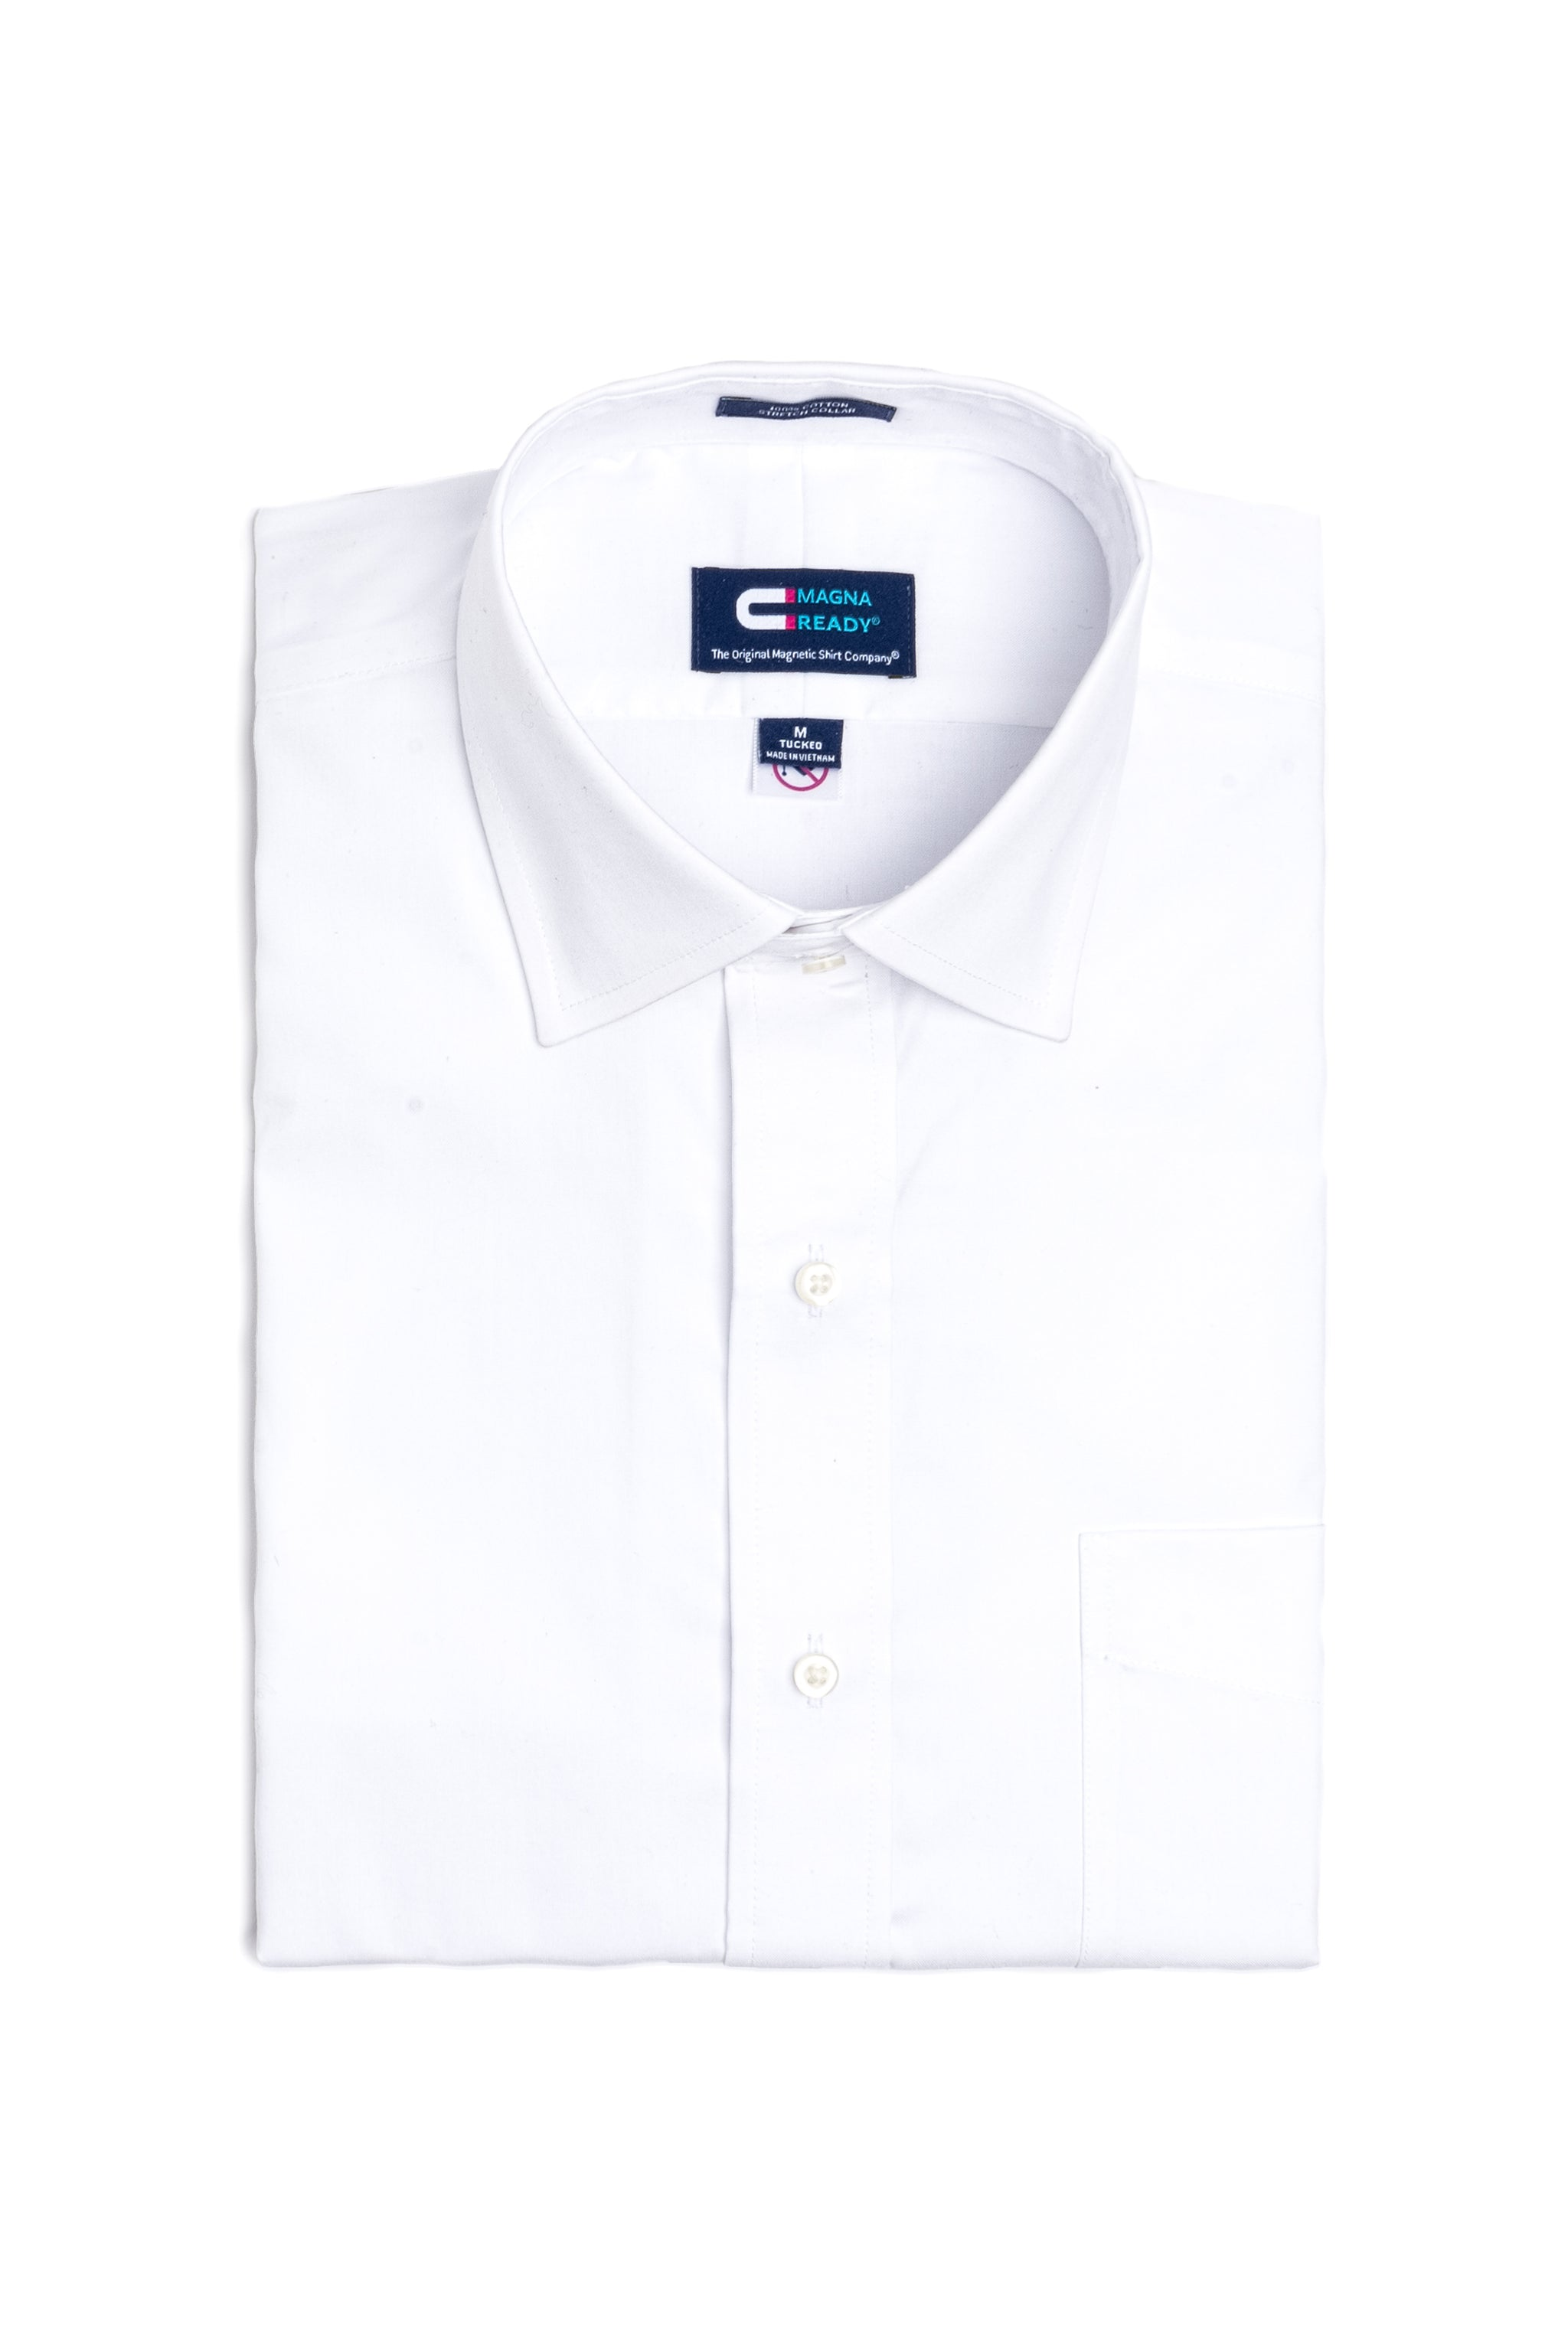 White Pinpoint Long Sleeve Shirt with Magnetic Closures d7eee846c